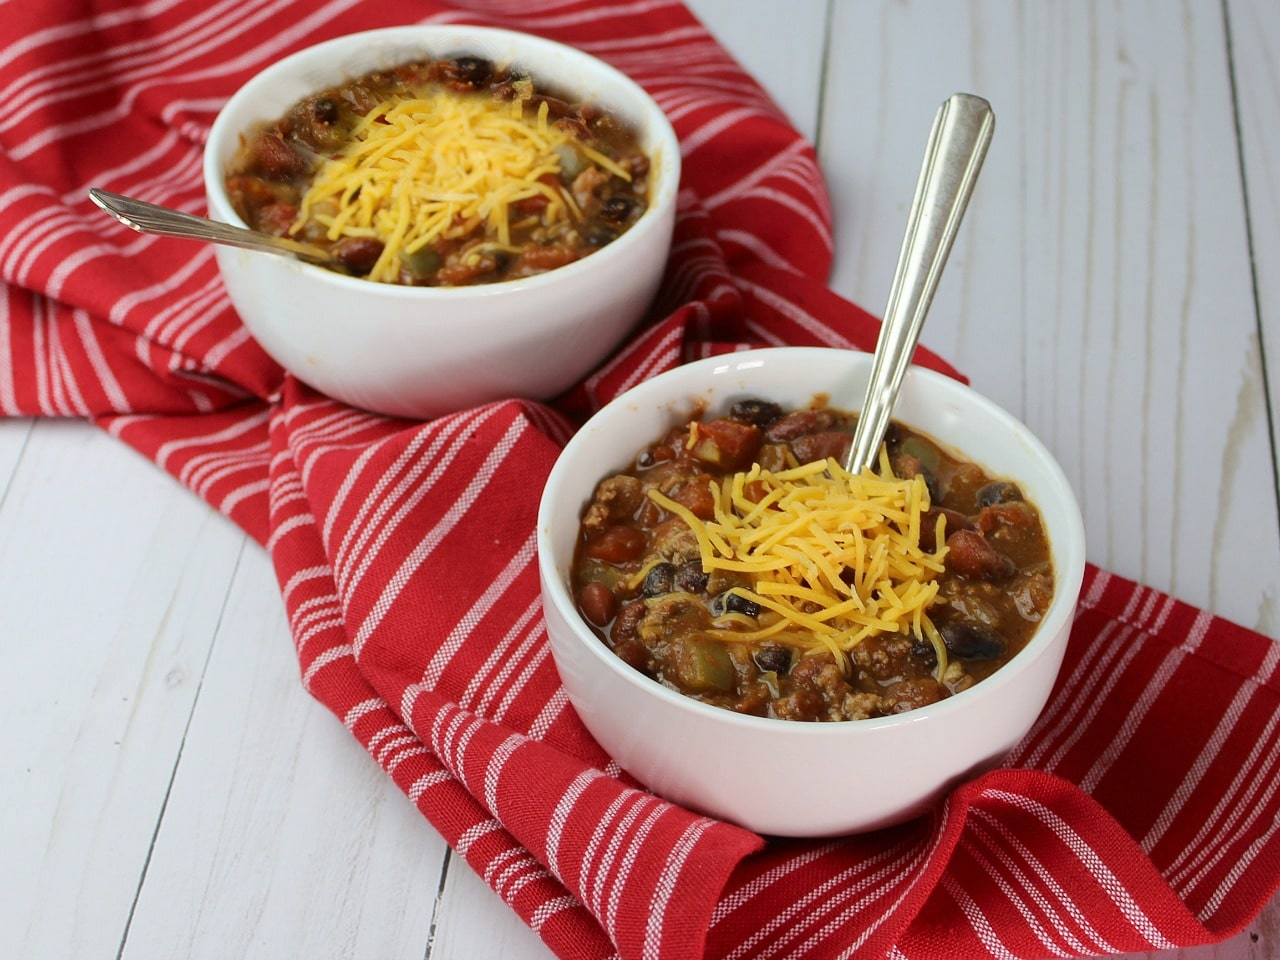 Thirty Minutes is all you need to make this easy chili recipe that's sure to be a favorite dinner for your family.